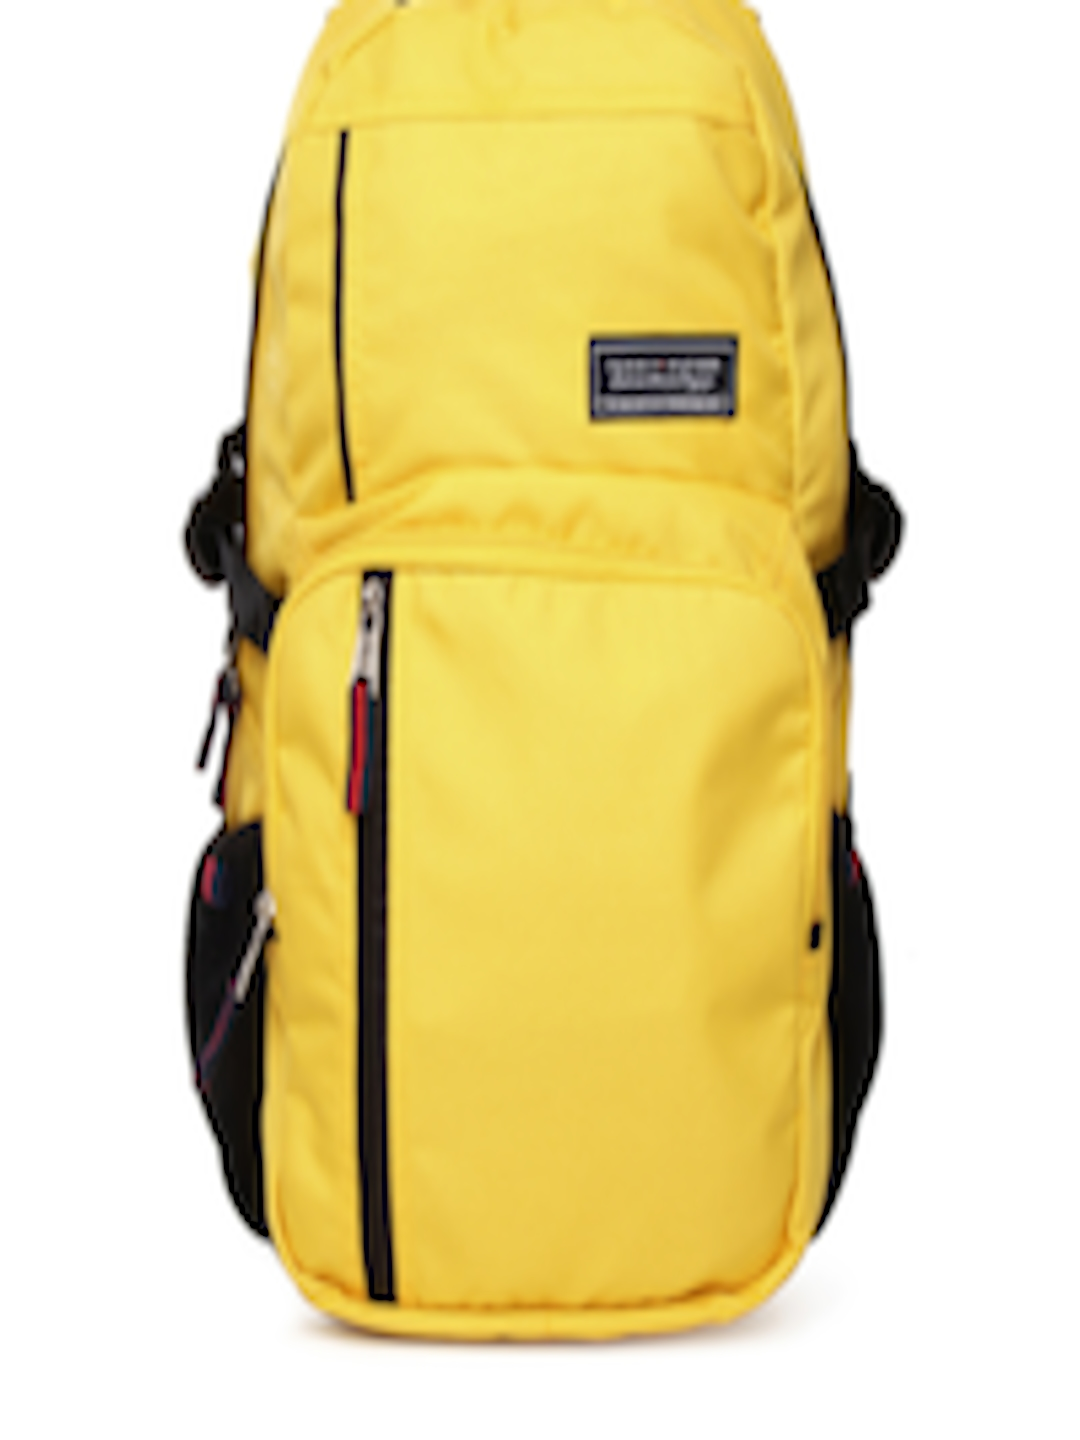 aba3ee6ca3 Buy Tommy Hilfiger Unisex Yellow Biker Club Backpack - Backpacks for Unisex  601766 | Myntra